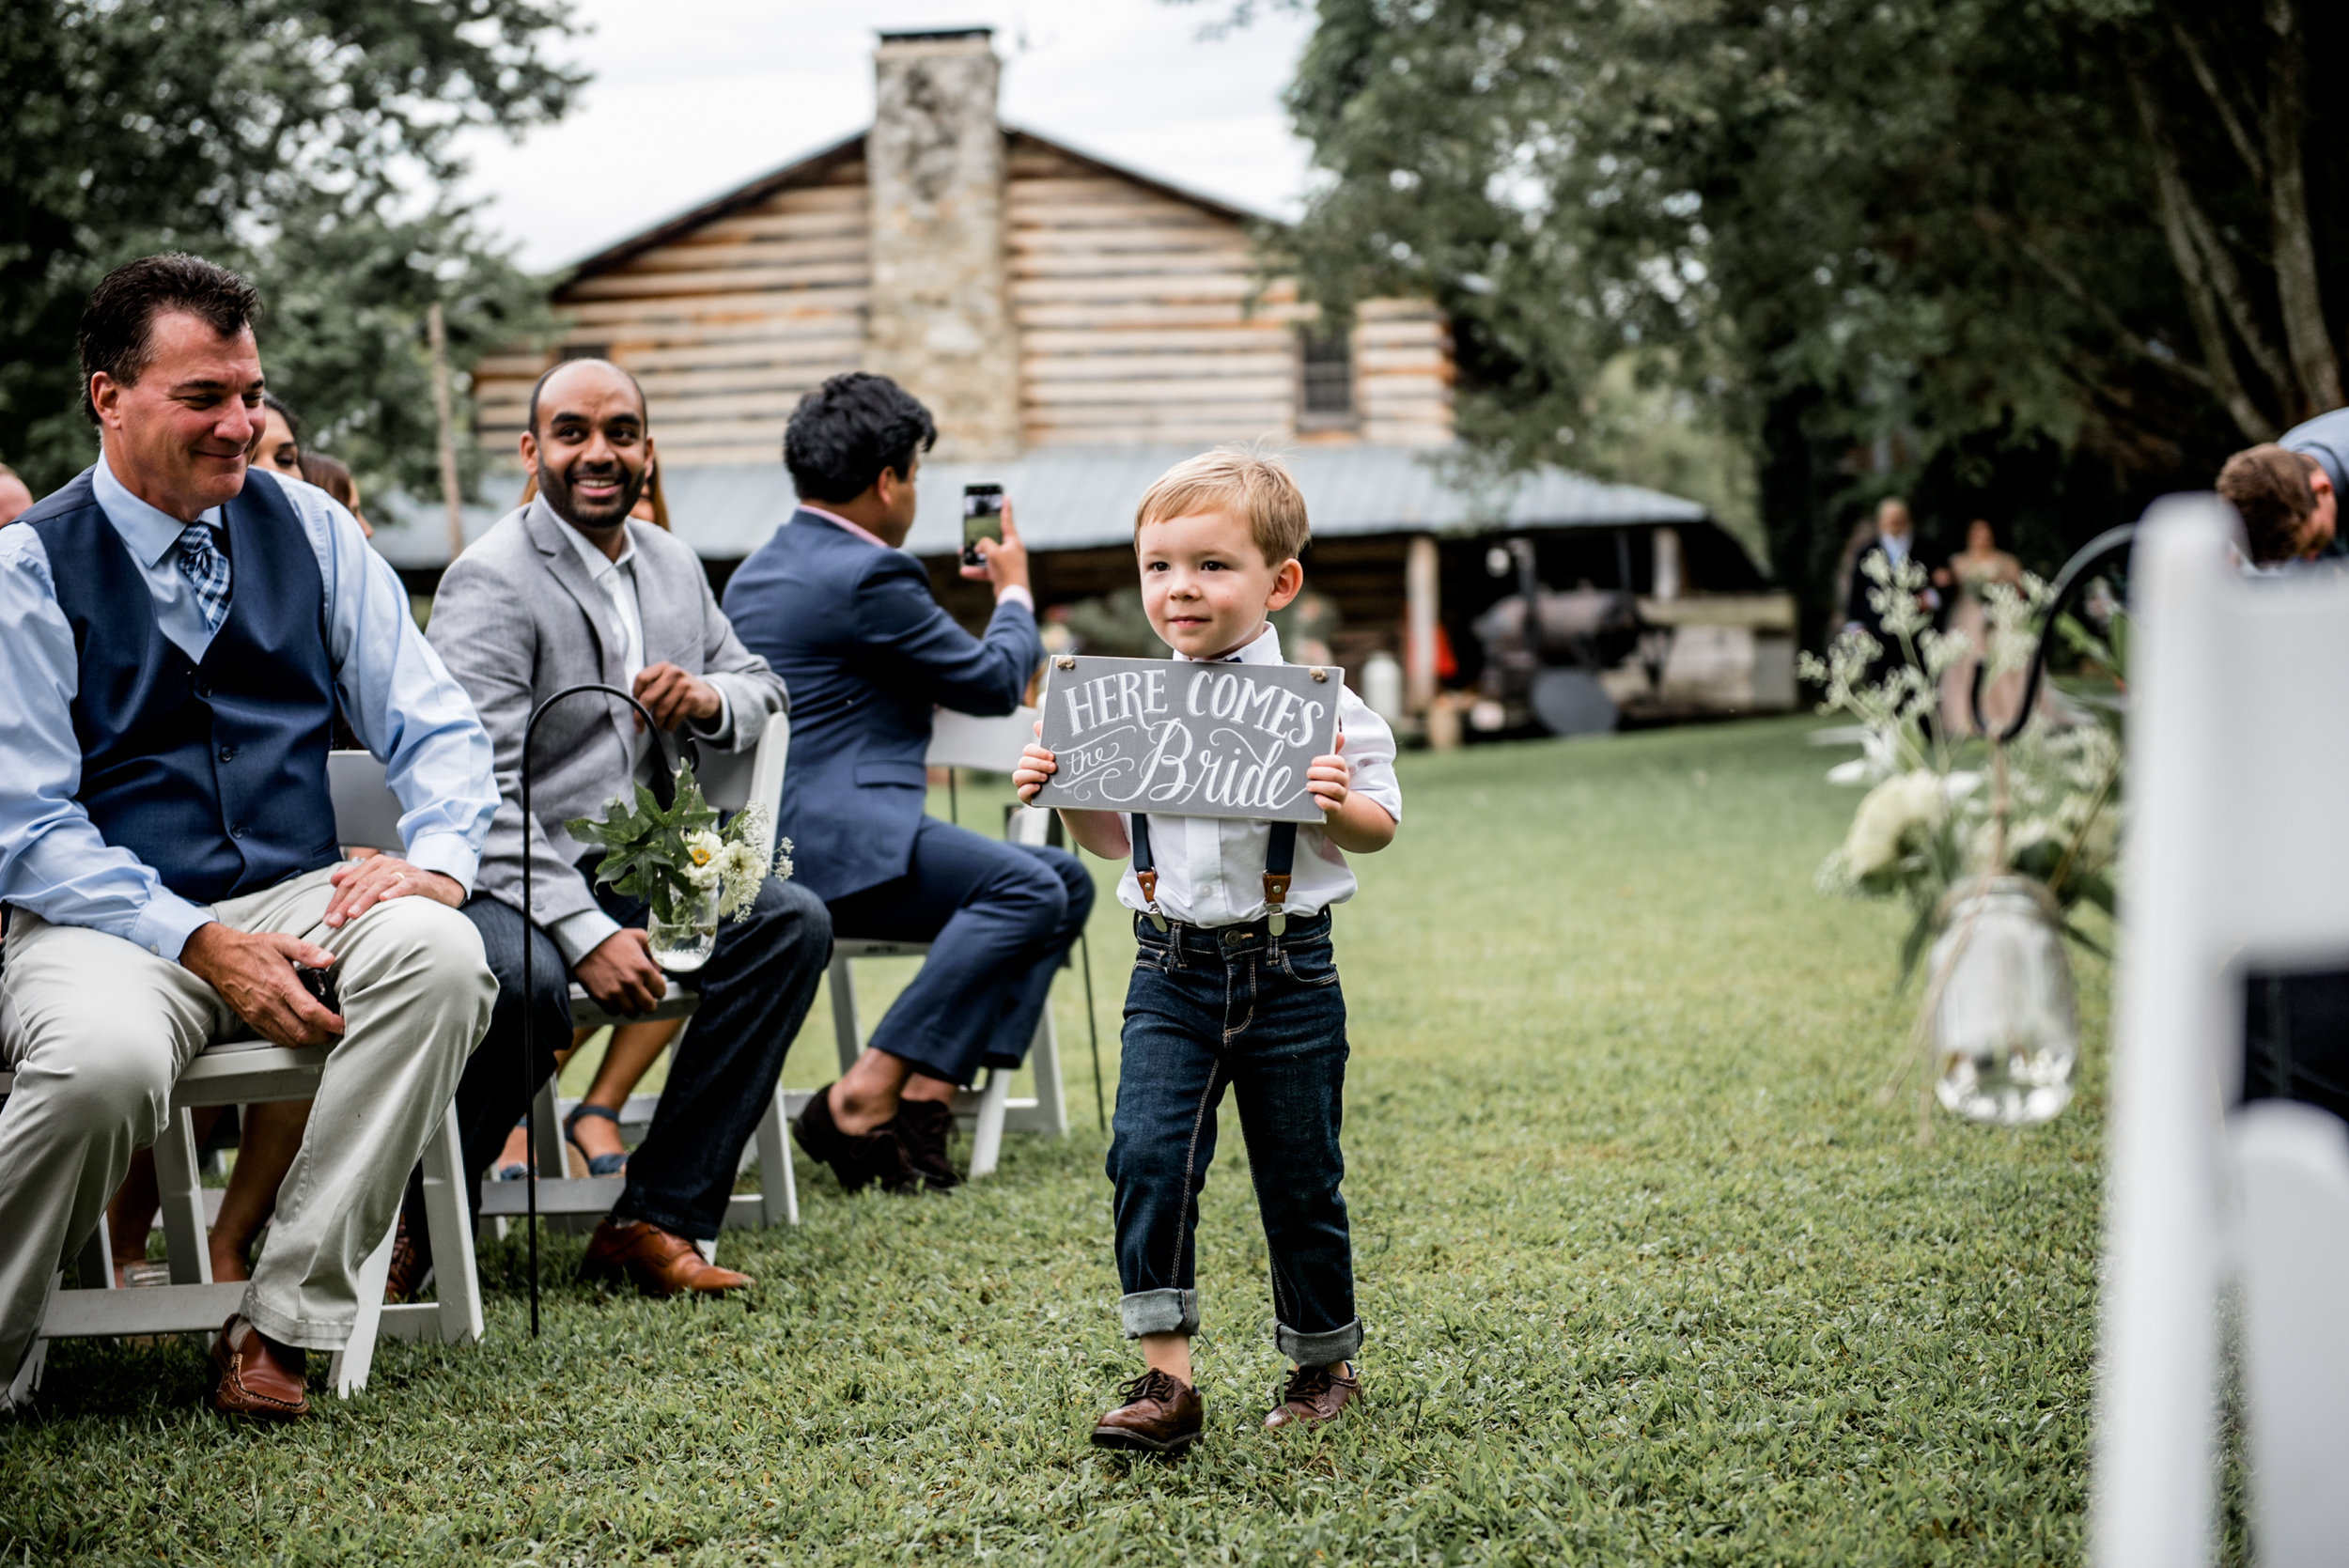 adorable ring bearer walks down aisle with here comes the bride sign